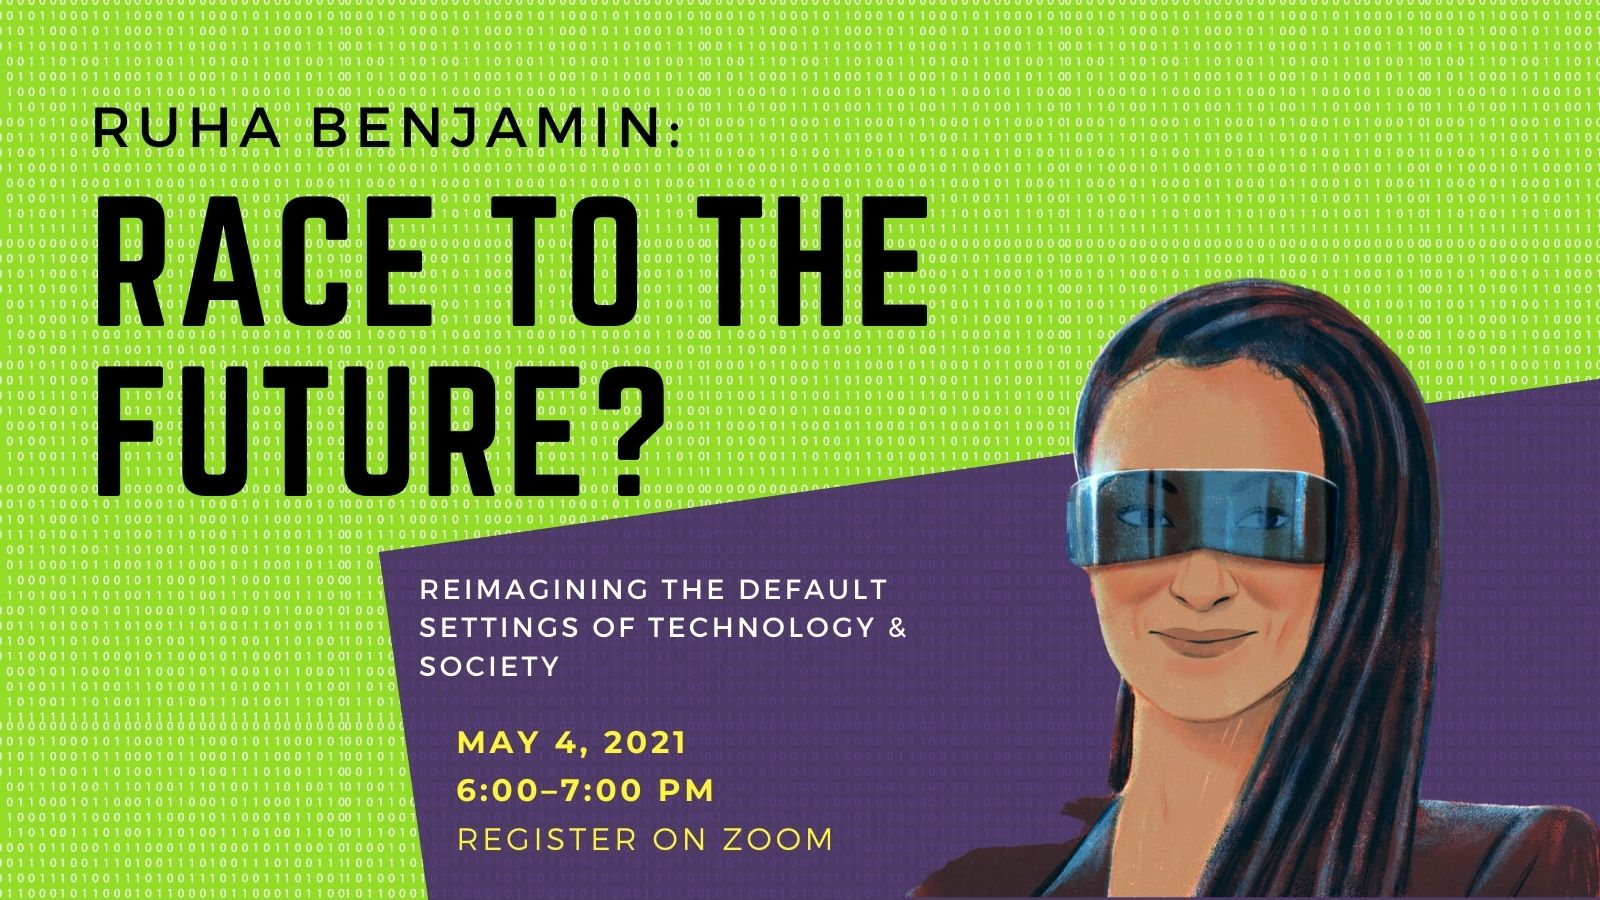 Ruha Benjamin: Race to the Future? Reimagining the Default Settings of Technology & Society